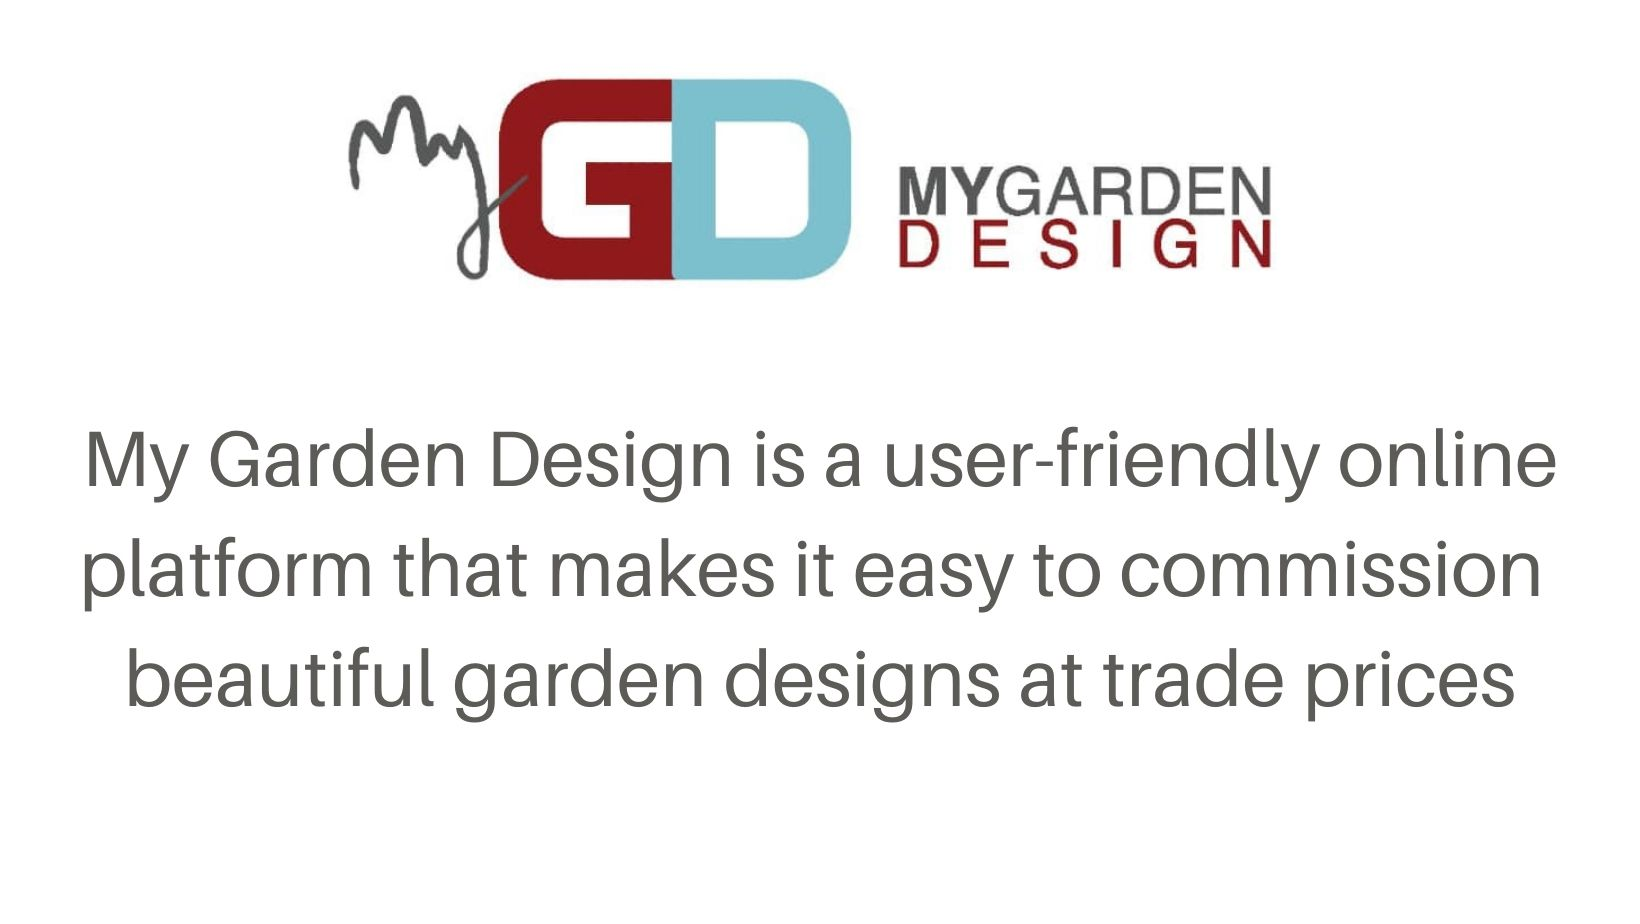 My Garden Design services for landscapers